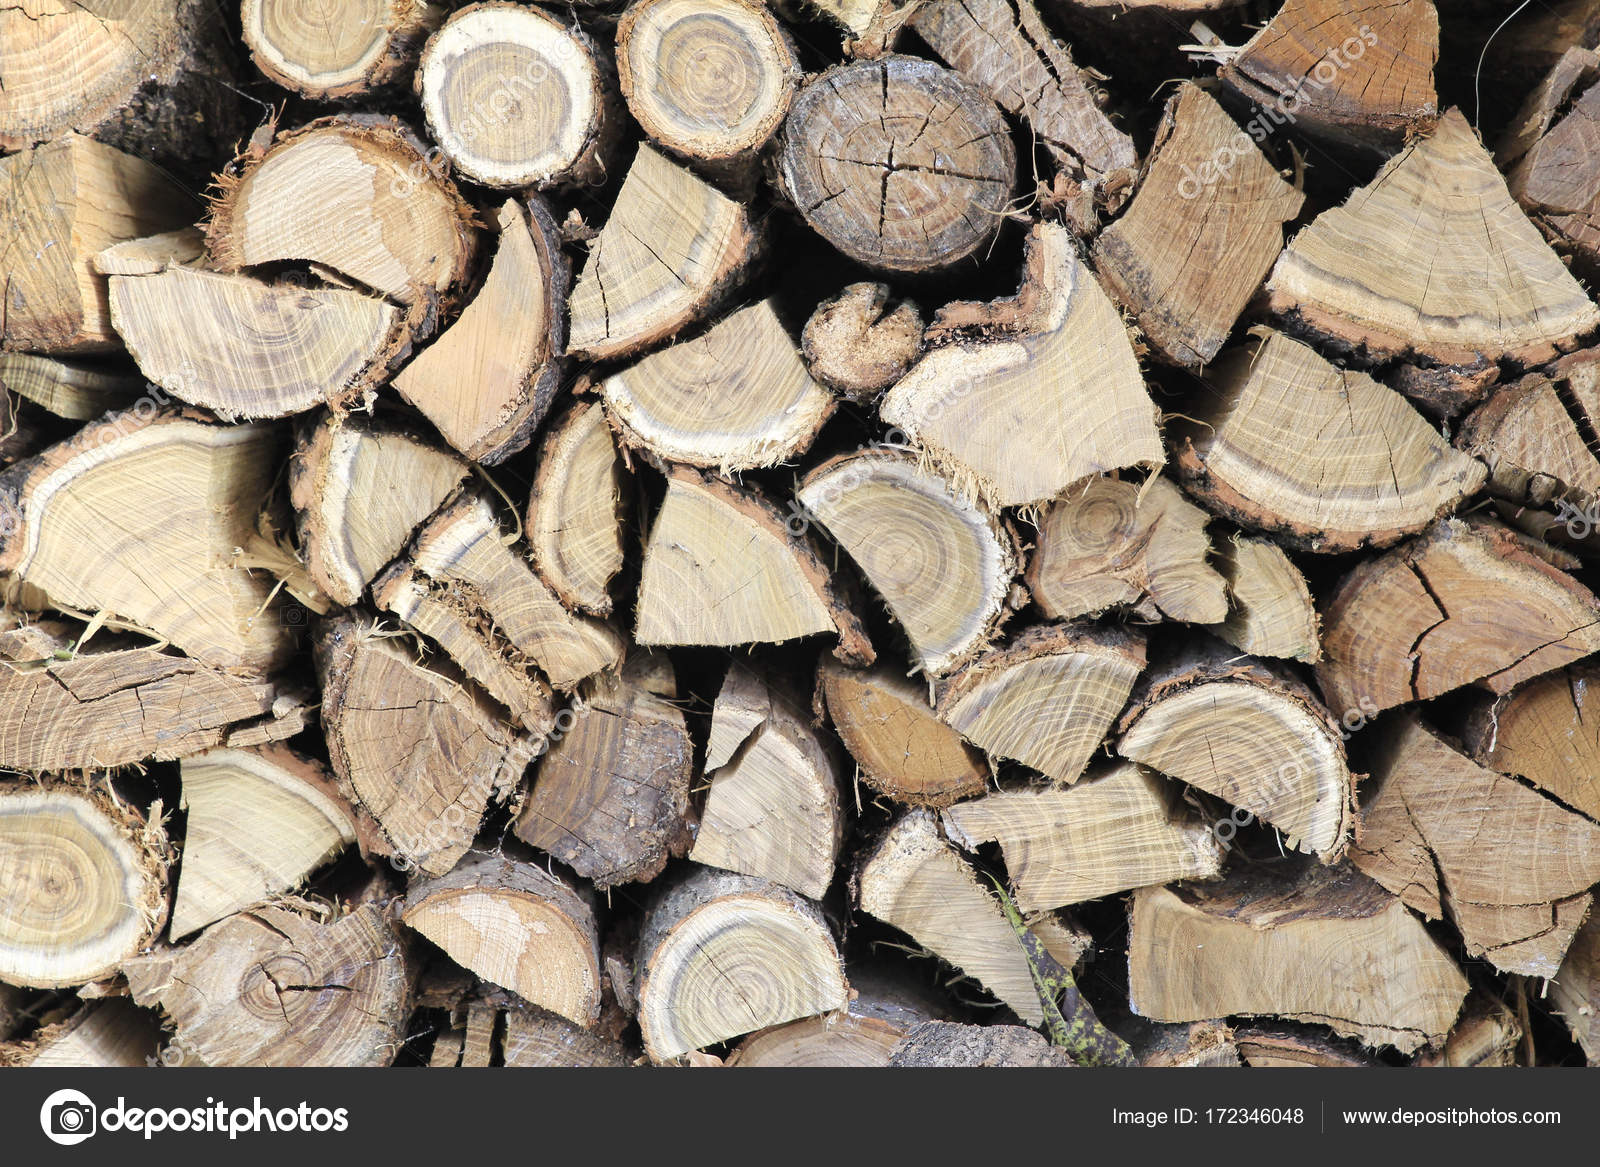 depositphotos 172346048 stock photo wood stack wallpaper - Tapete Holzstapel